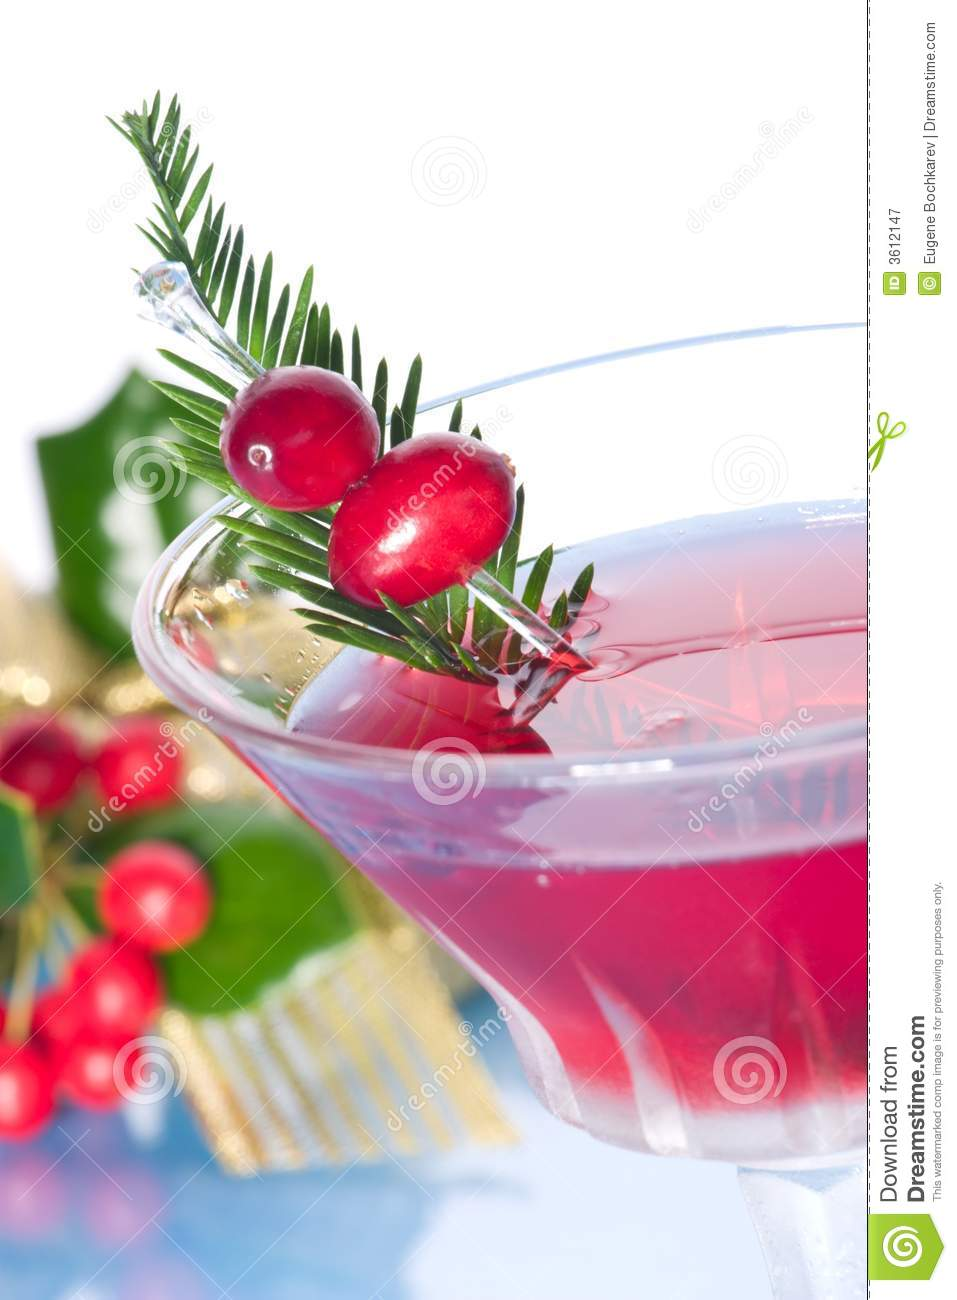 Holiday cocktail royalty free stock photography image for Christmas in a glass cocktail